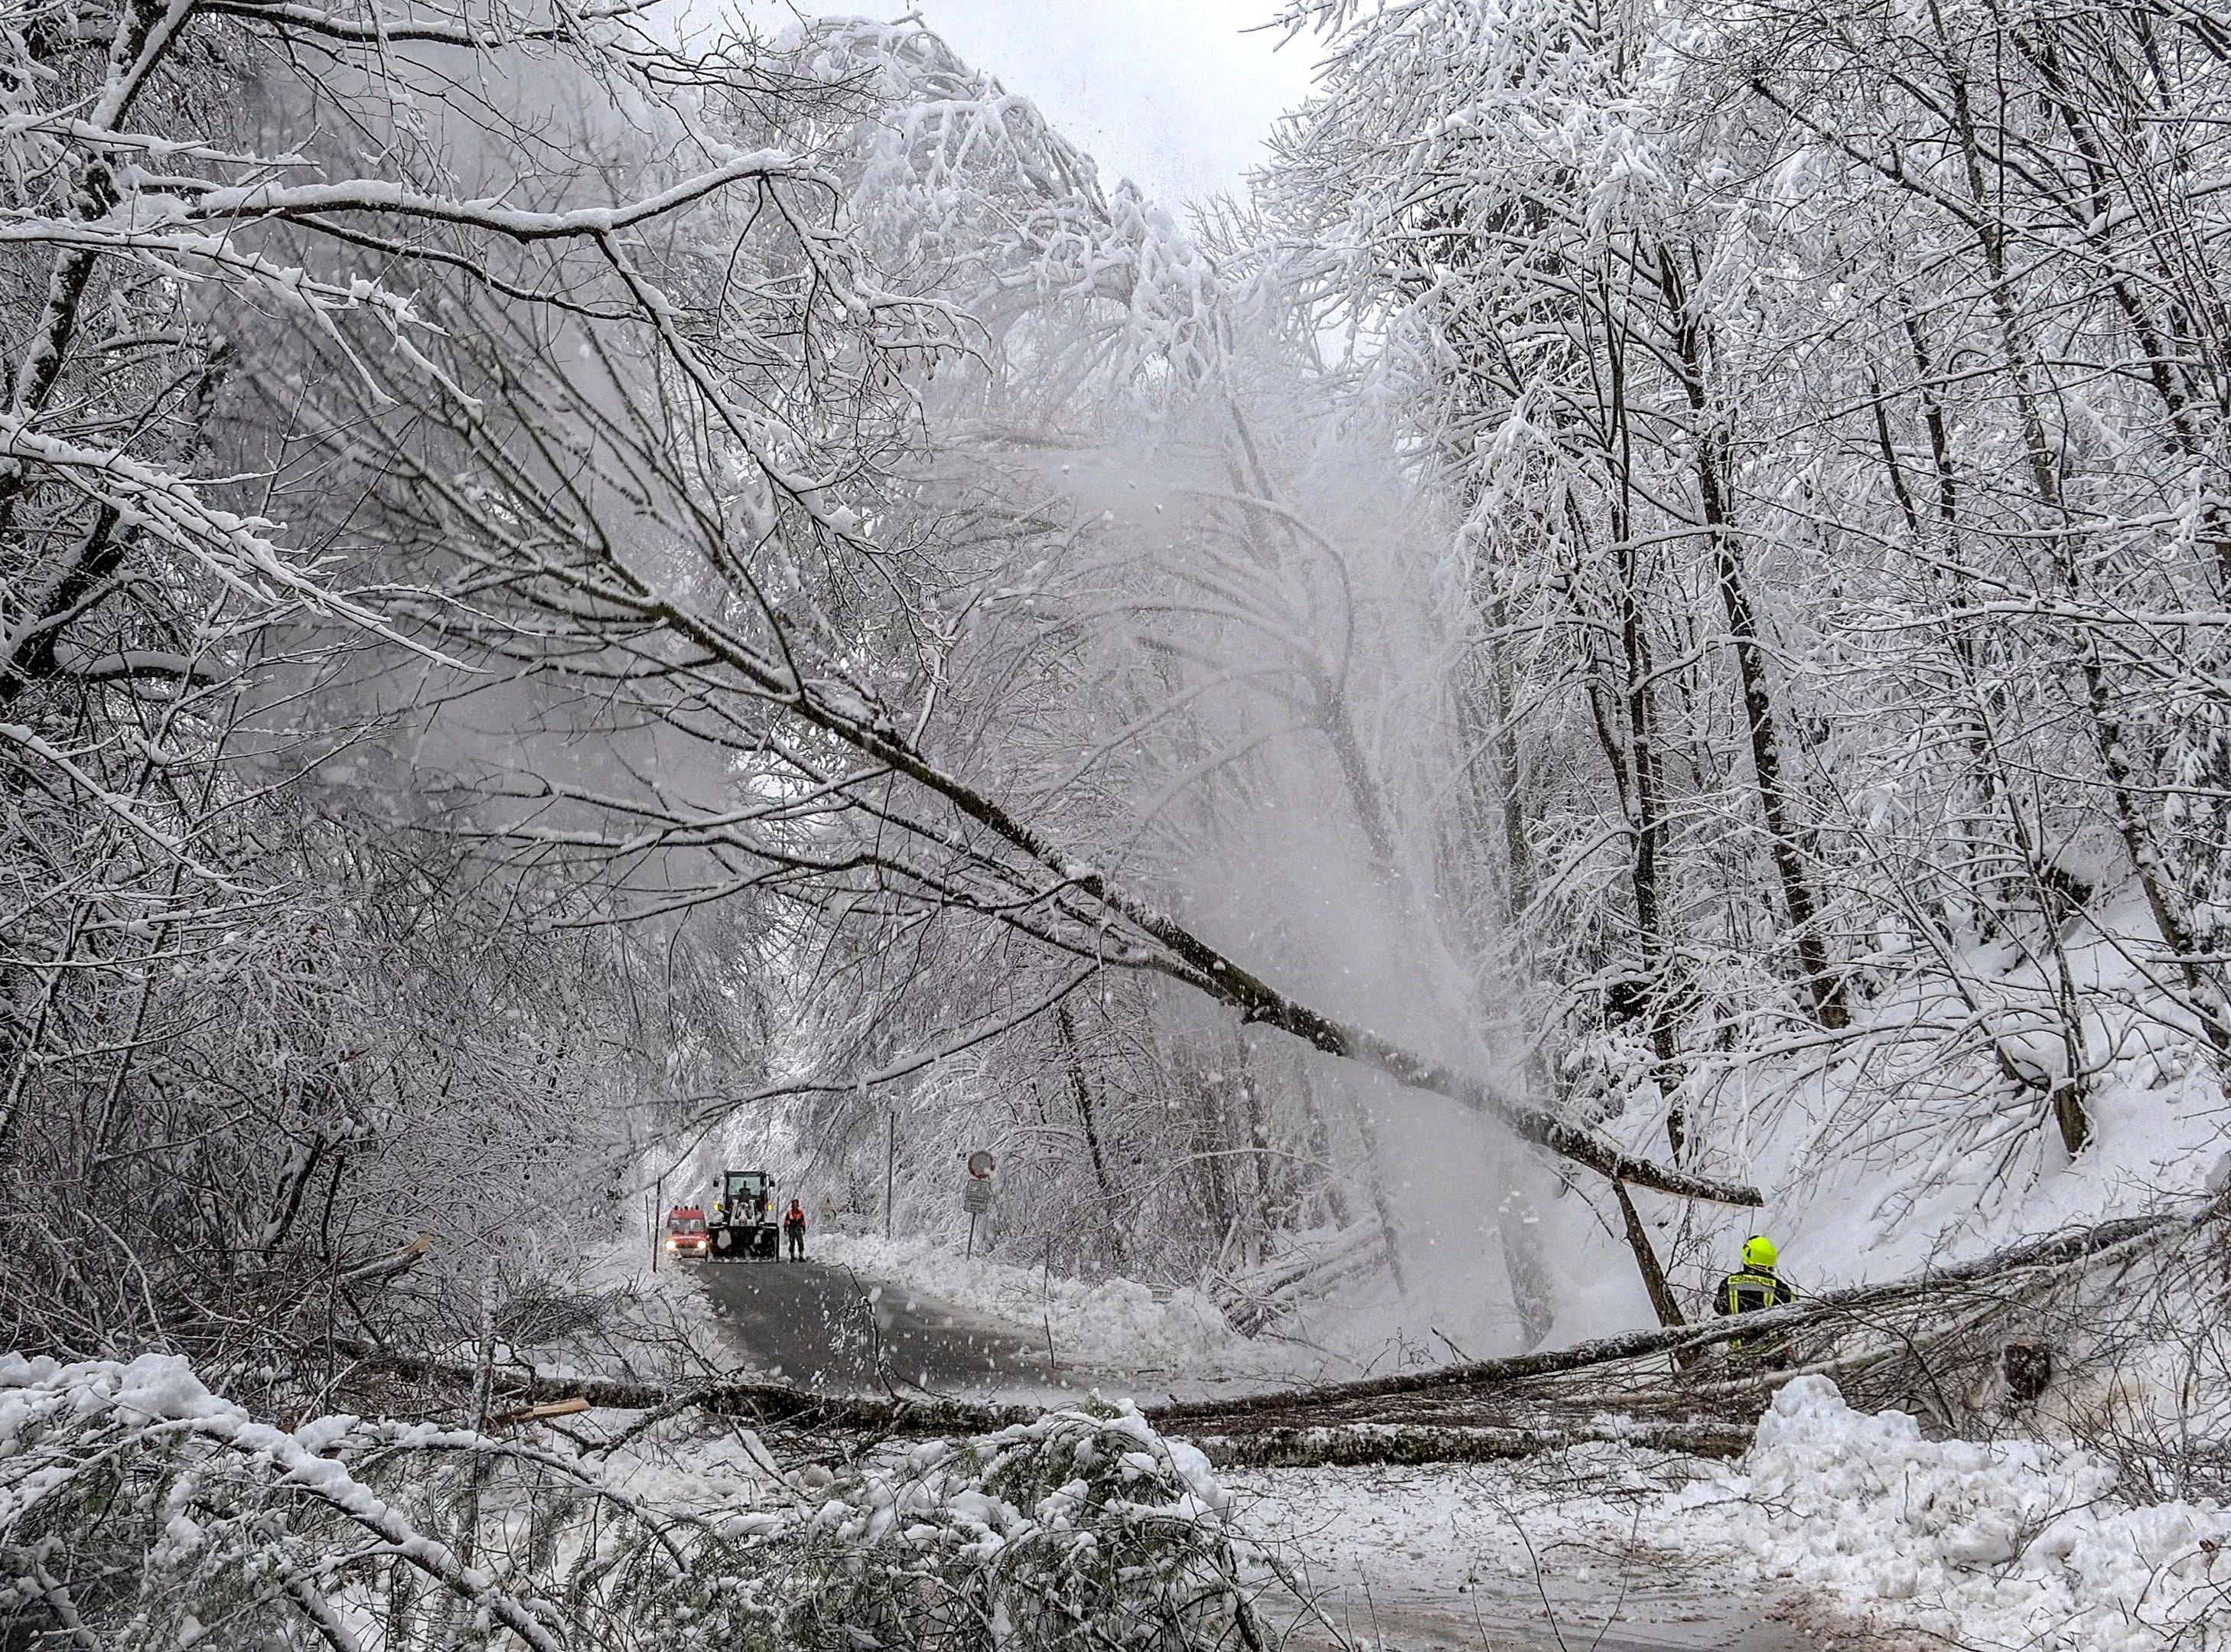 A firefighter slogs snow-covered trees on a road in Schaufling, southern Germany, Wednesday, Jan. 9, 2019.